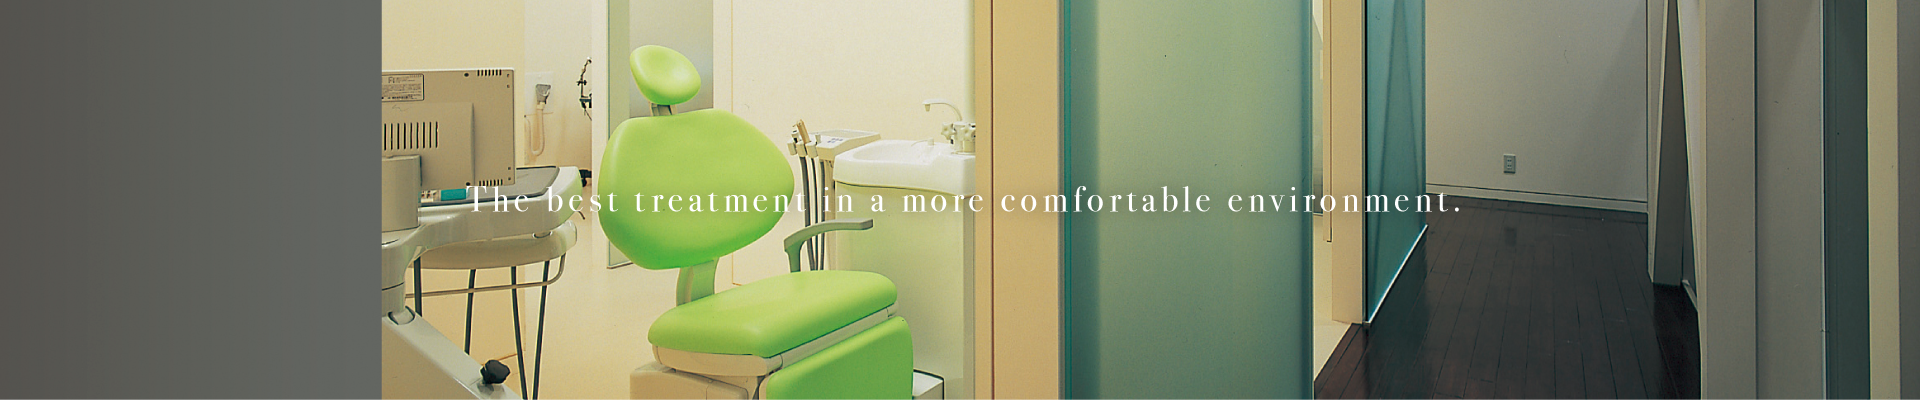 The best treatment in a more comfortable environment.